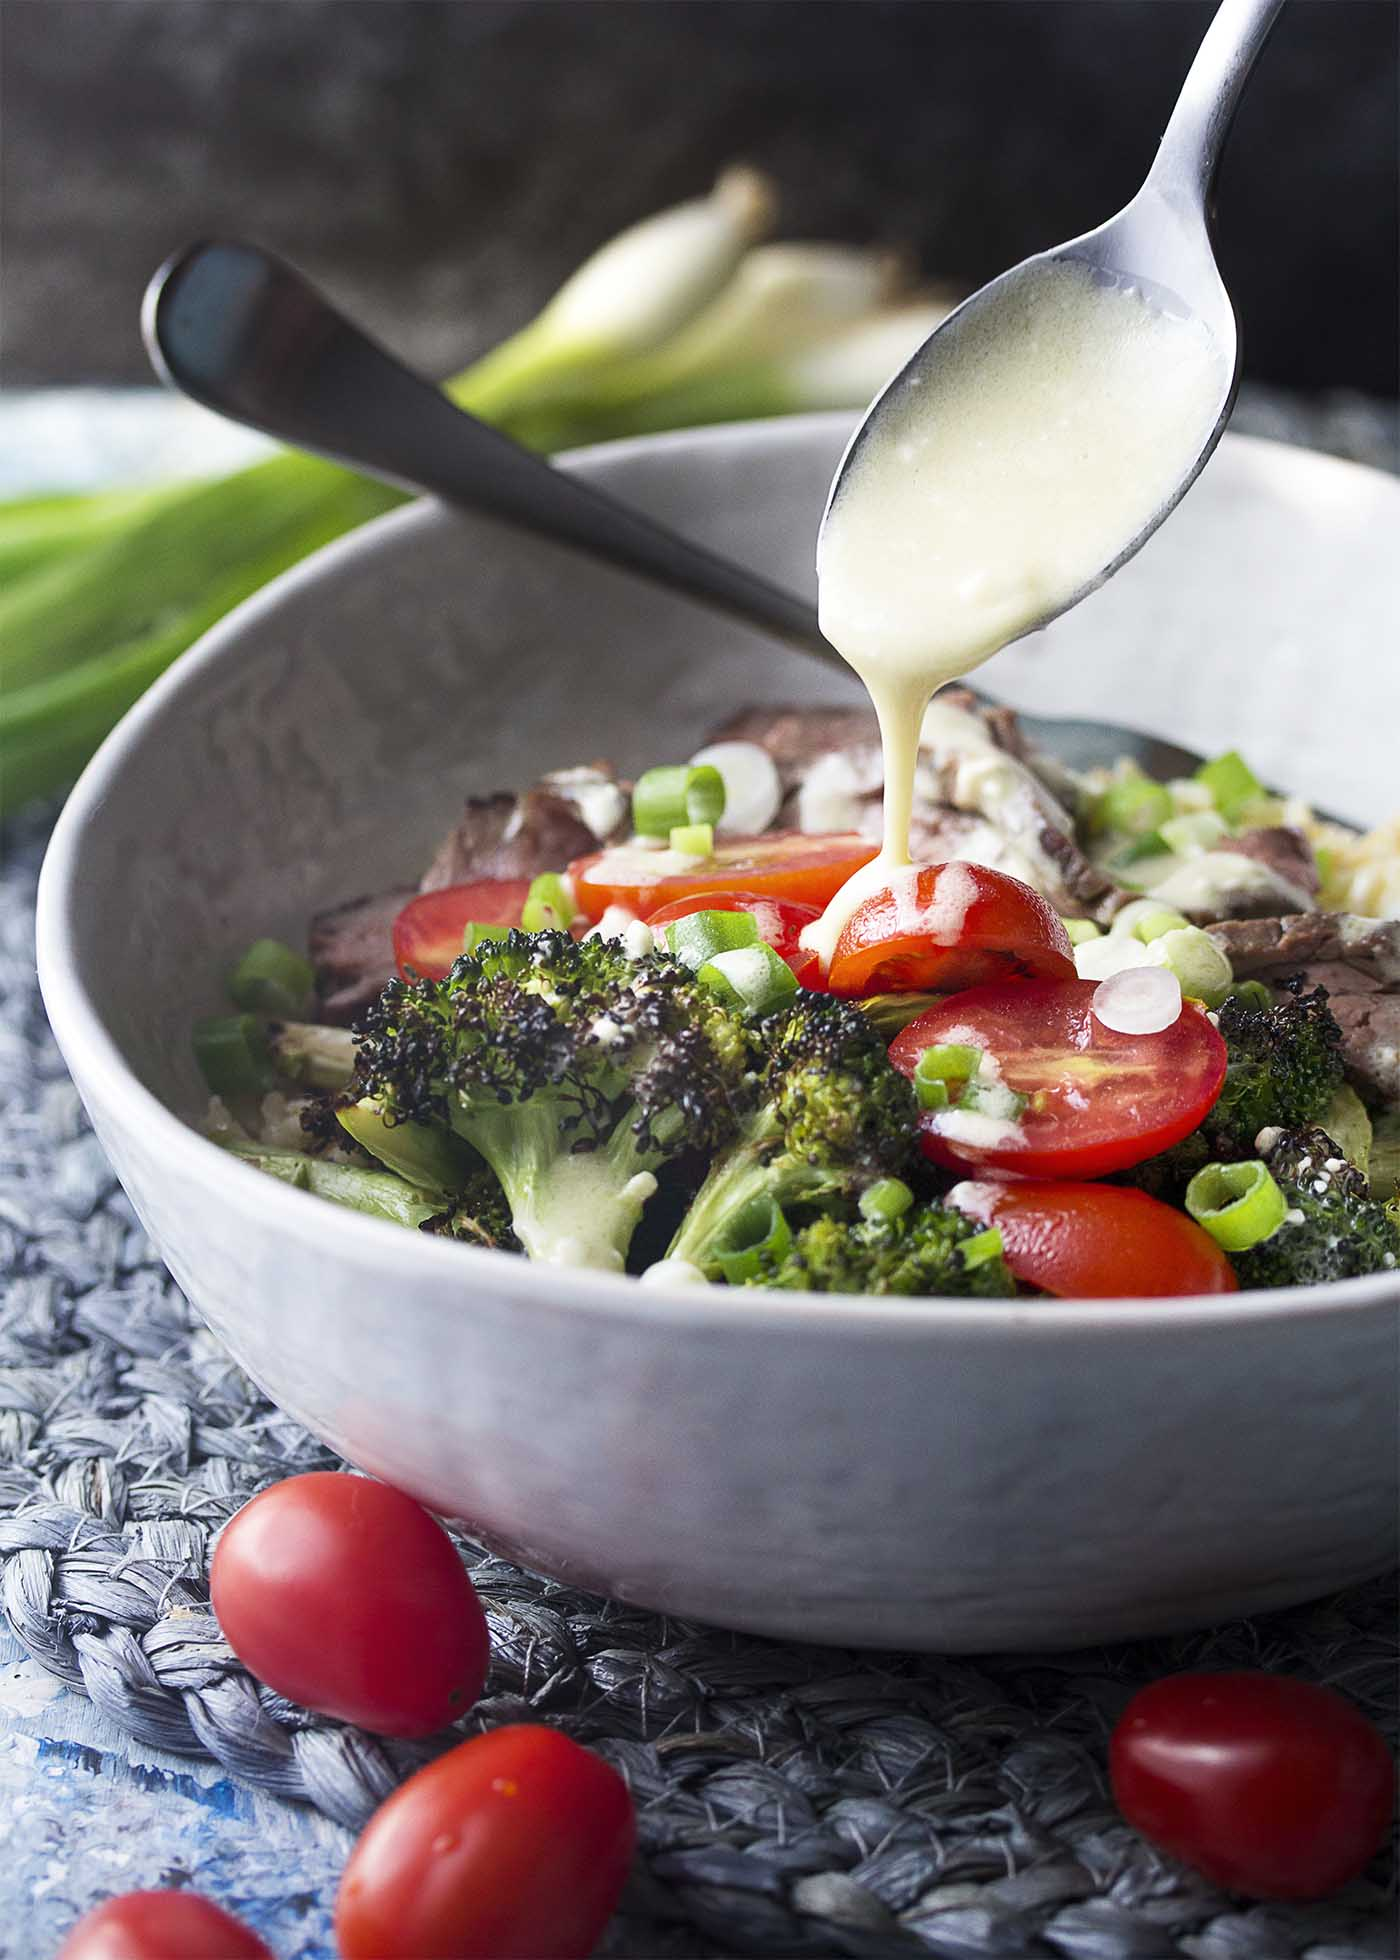 A spoon drizzling blue cheese dressing over a bowl filled with grilled steak and broccoli salad.